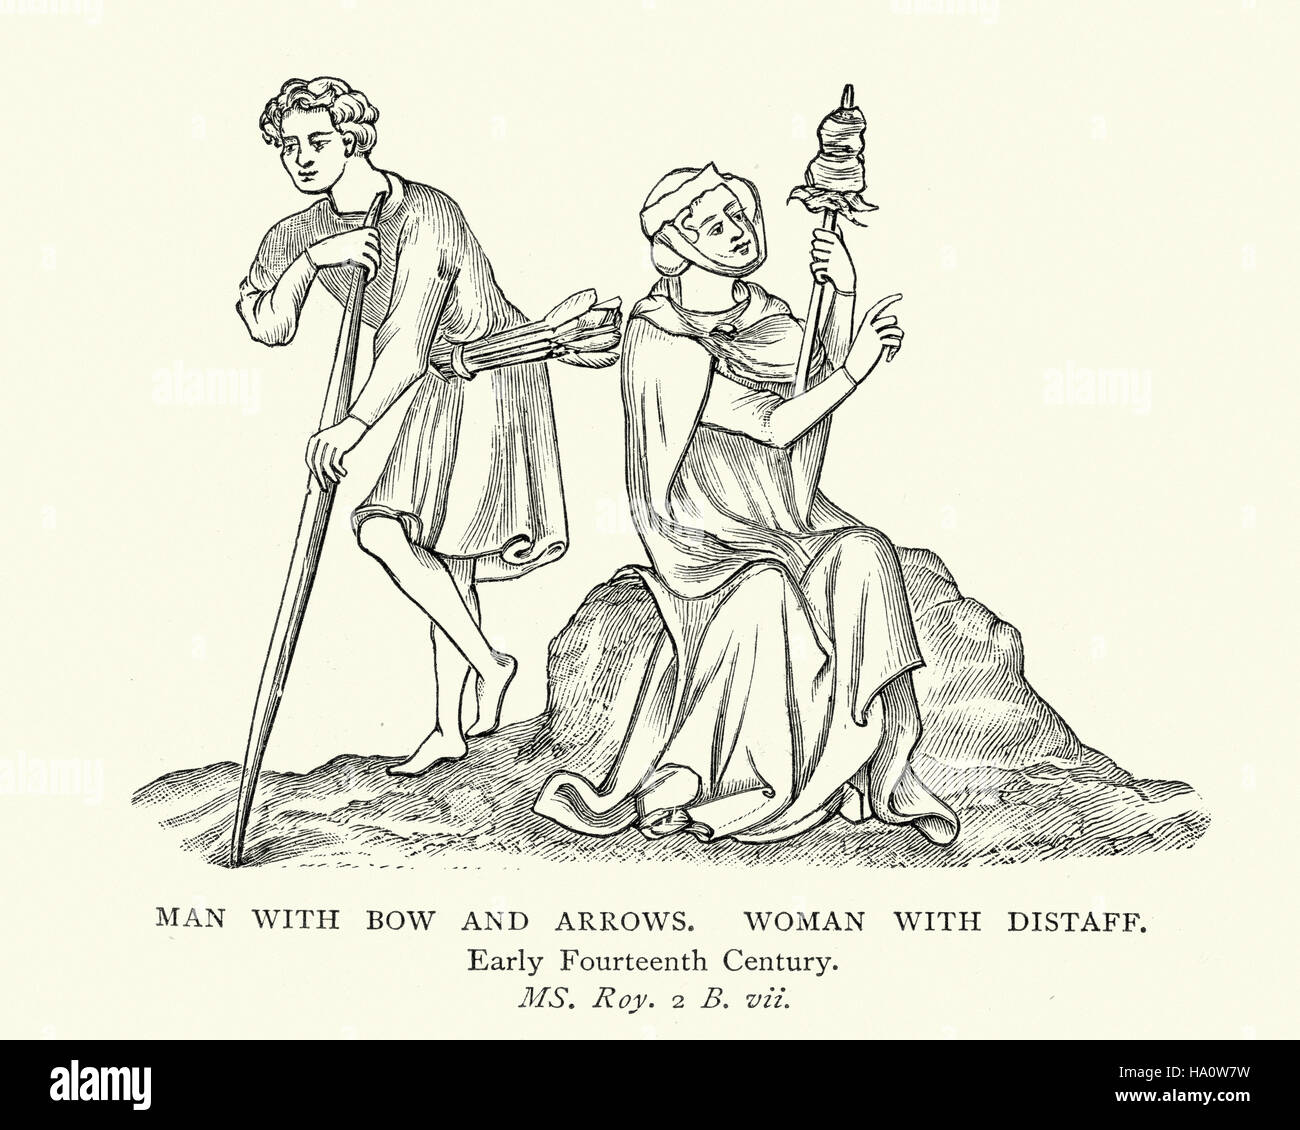 Medieval man with bow and arrows and woman with distaff a tool medieval man with bow and arrows and woman with distaff a tool used in spinning fiber early 14th century sciox Gallery